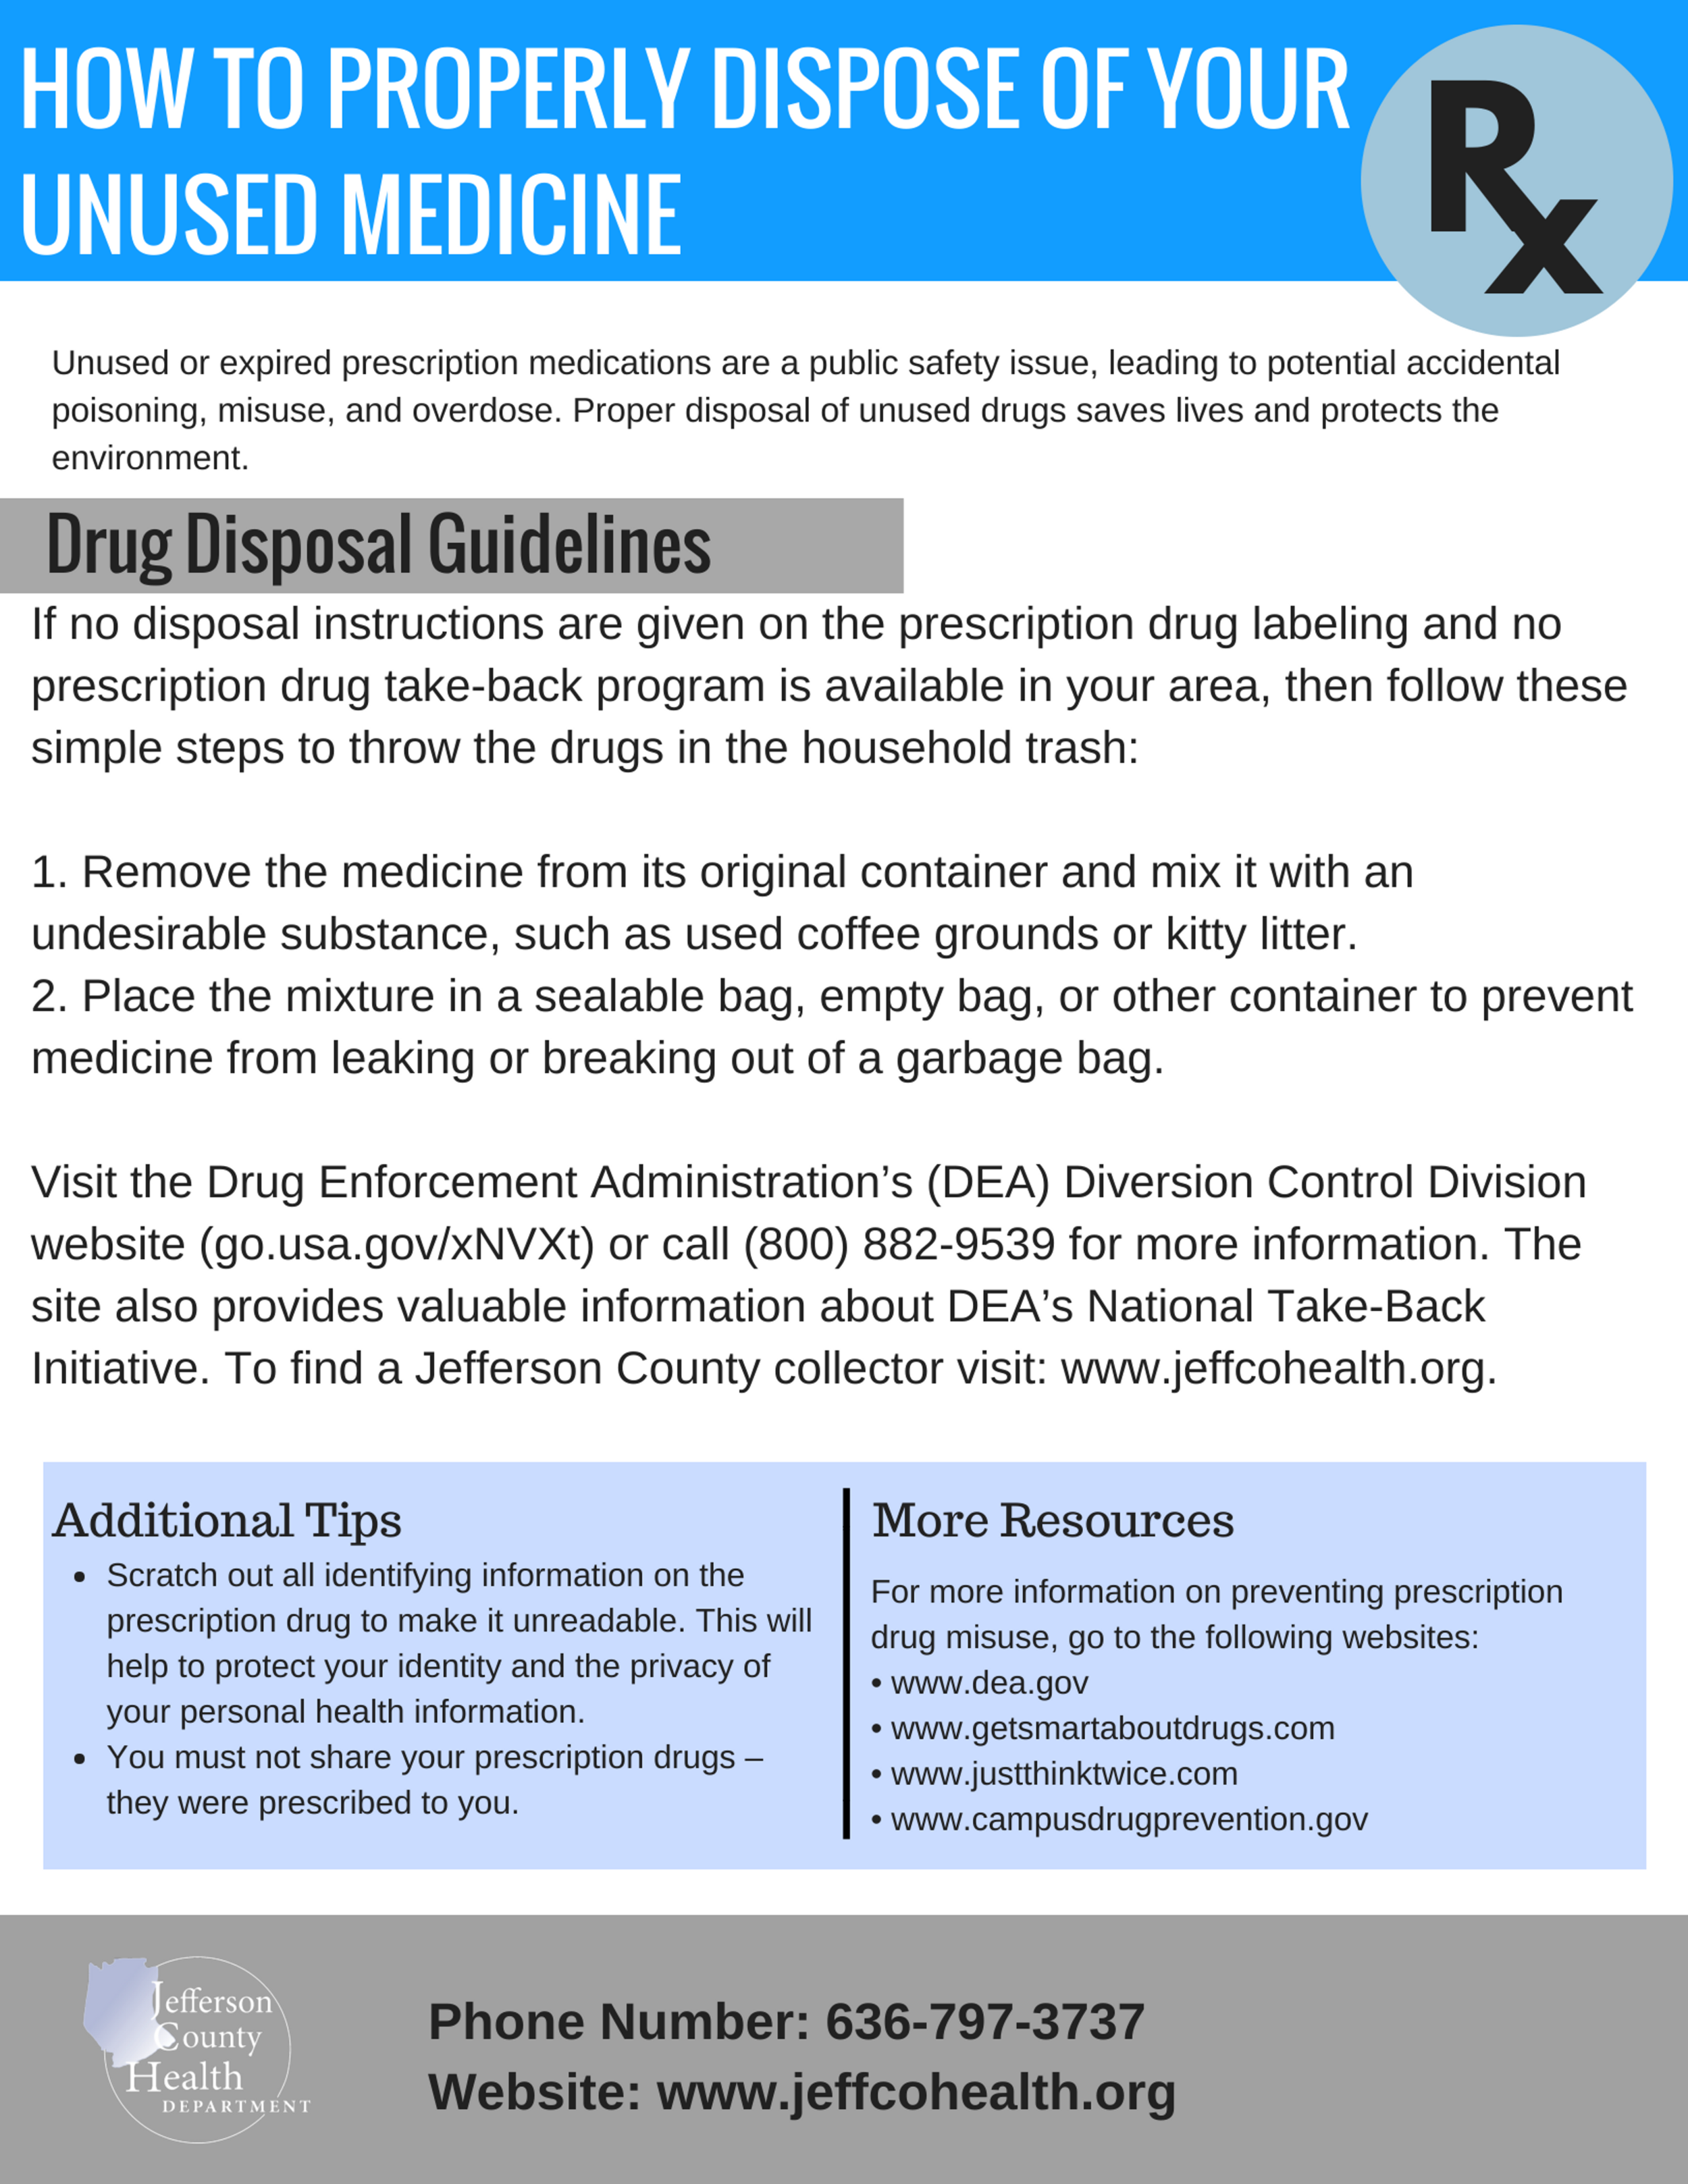 Proper Medication Disposal - The above resource shows how to properly dispose of any unwanted medication if a drop box location is not accessible. Jefferson County has a number of permanent drop boxes that take medication annonymously and dispose of them safely. Please see next resource for more information on locations and hours.